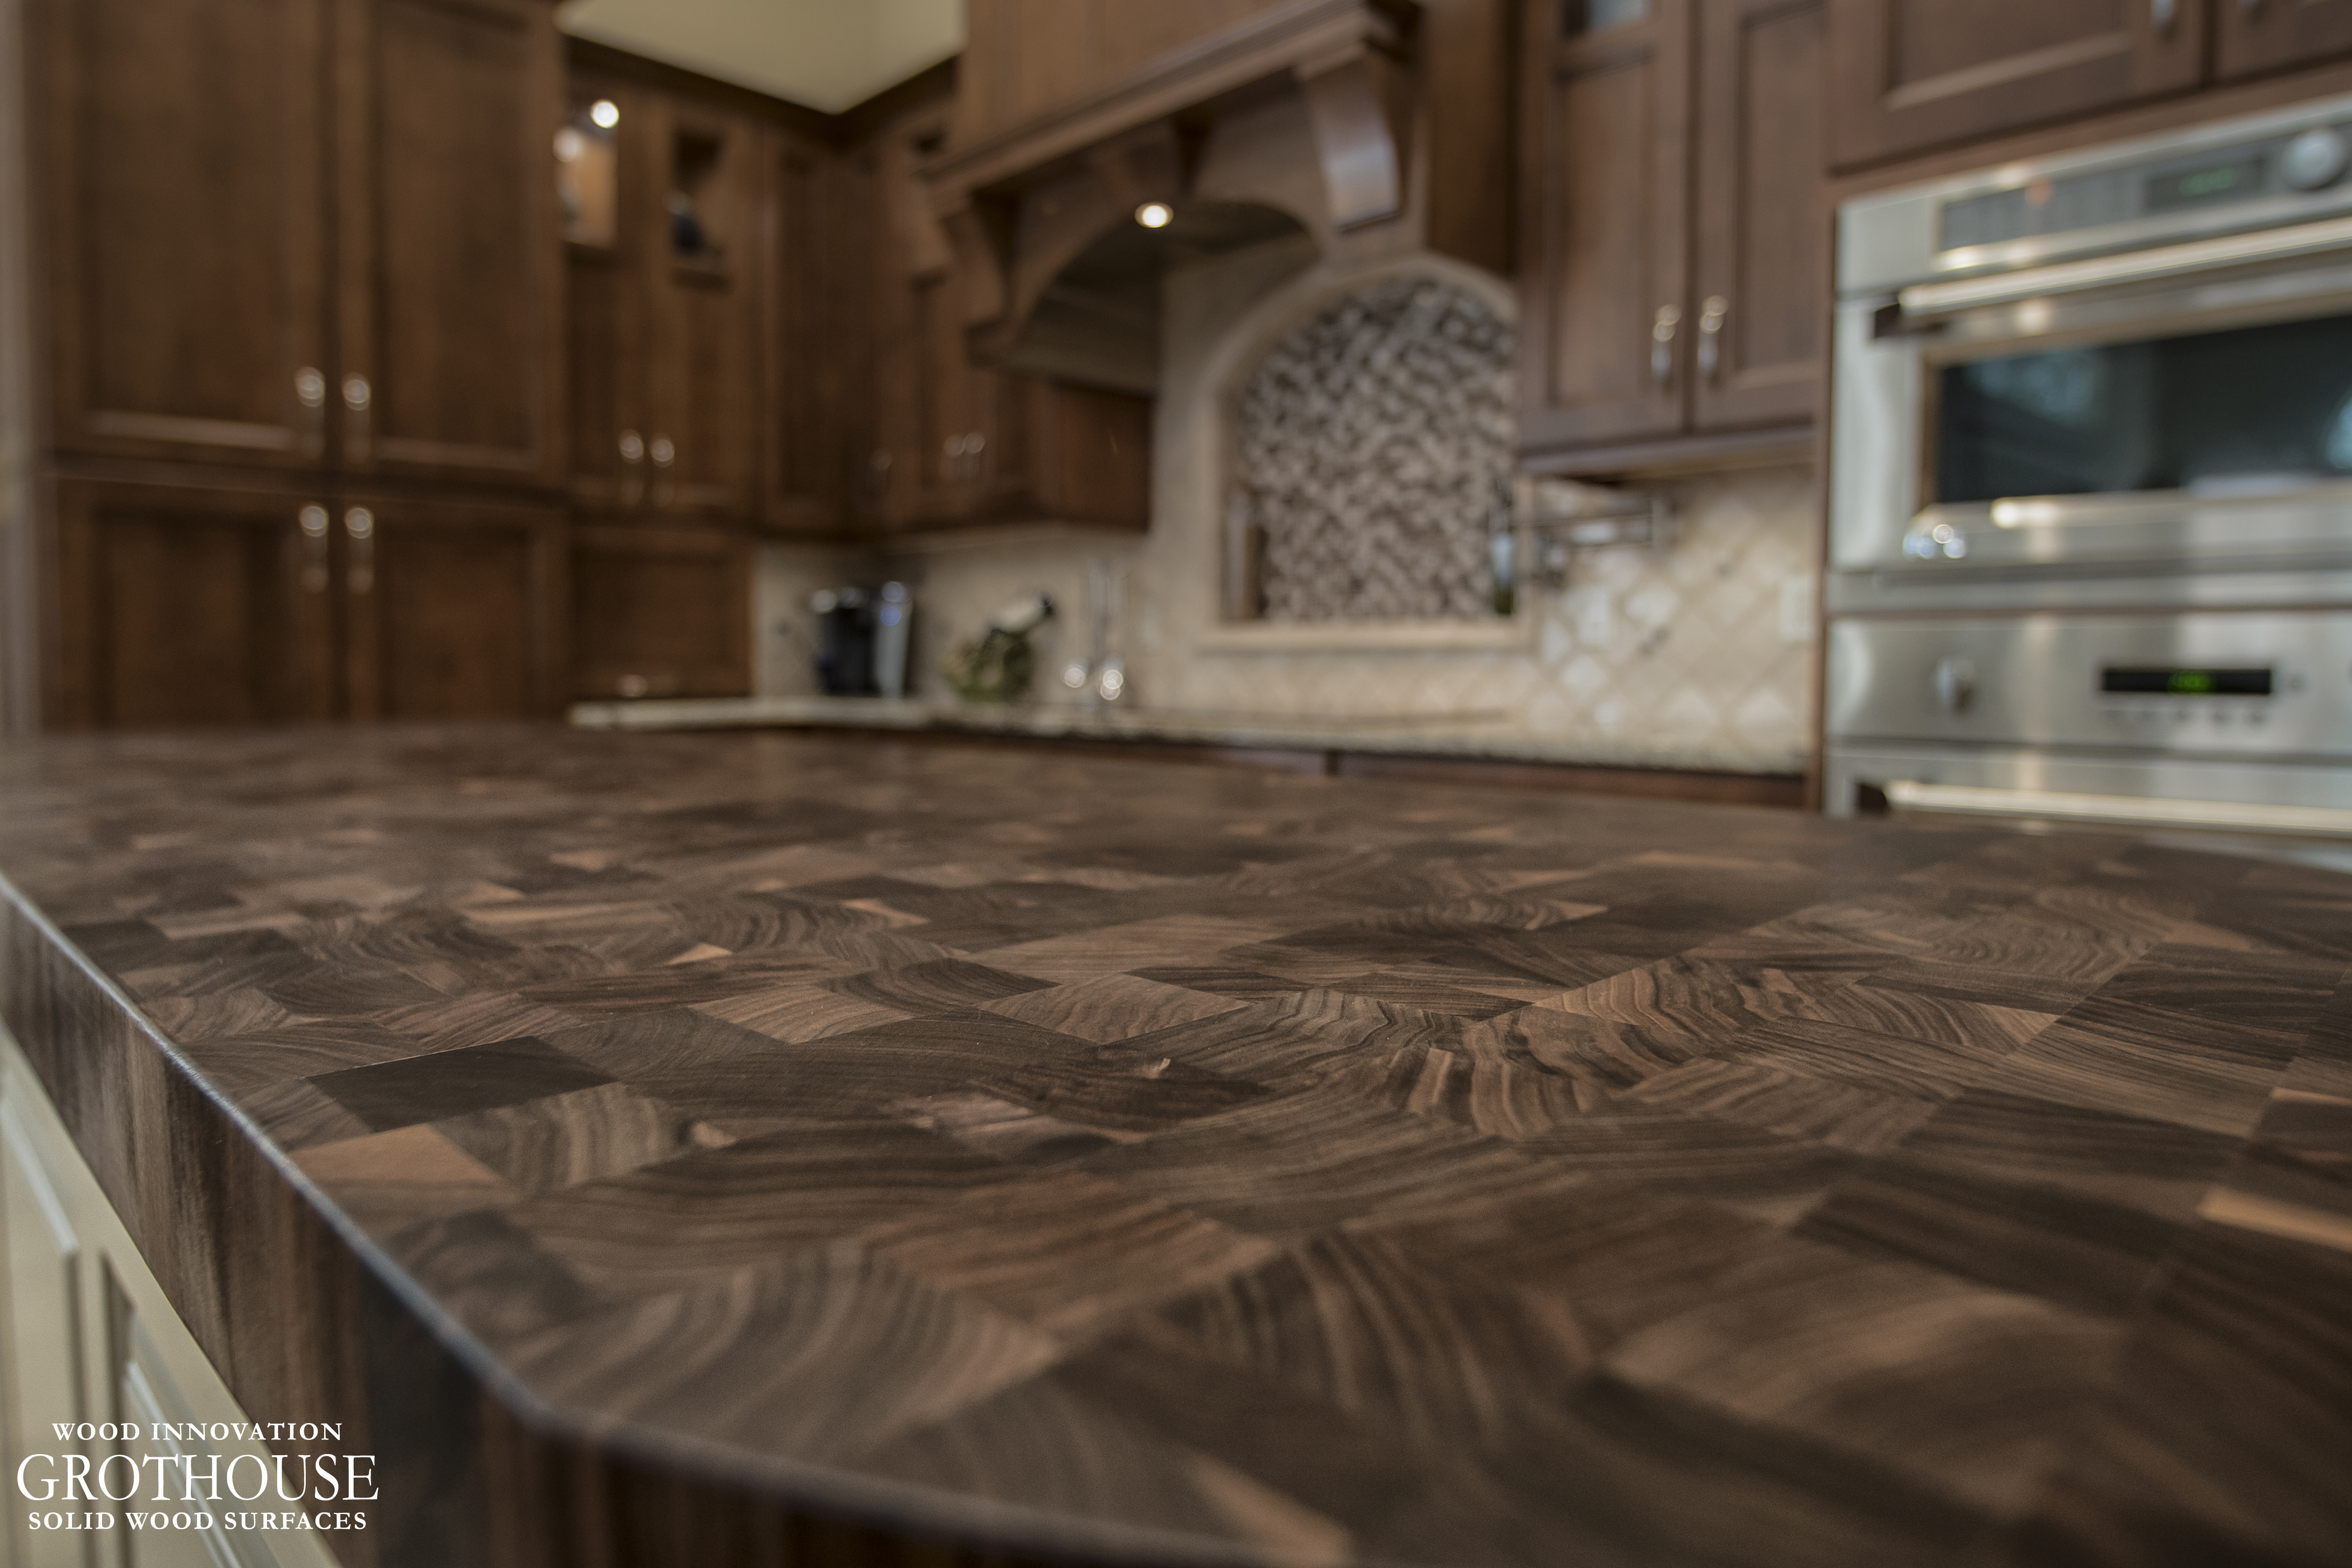 Butcher Block Pros and Cons by Grothouse